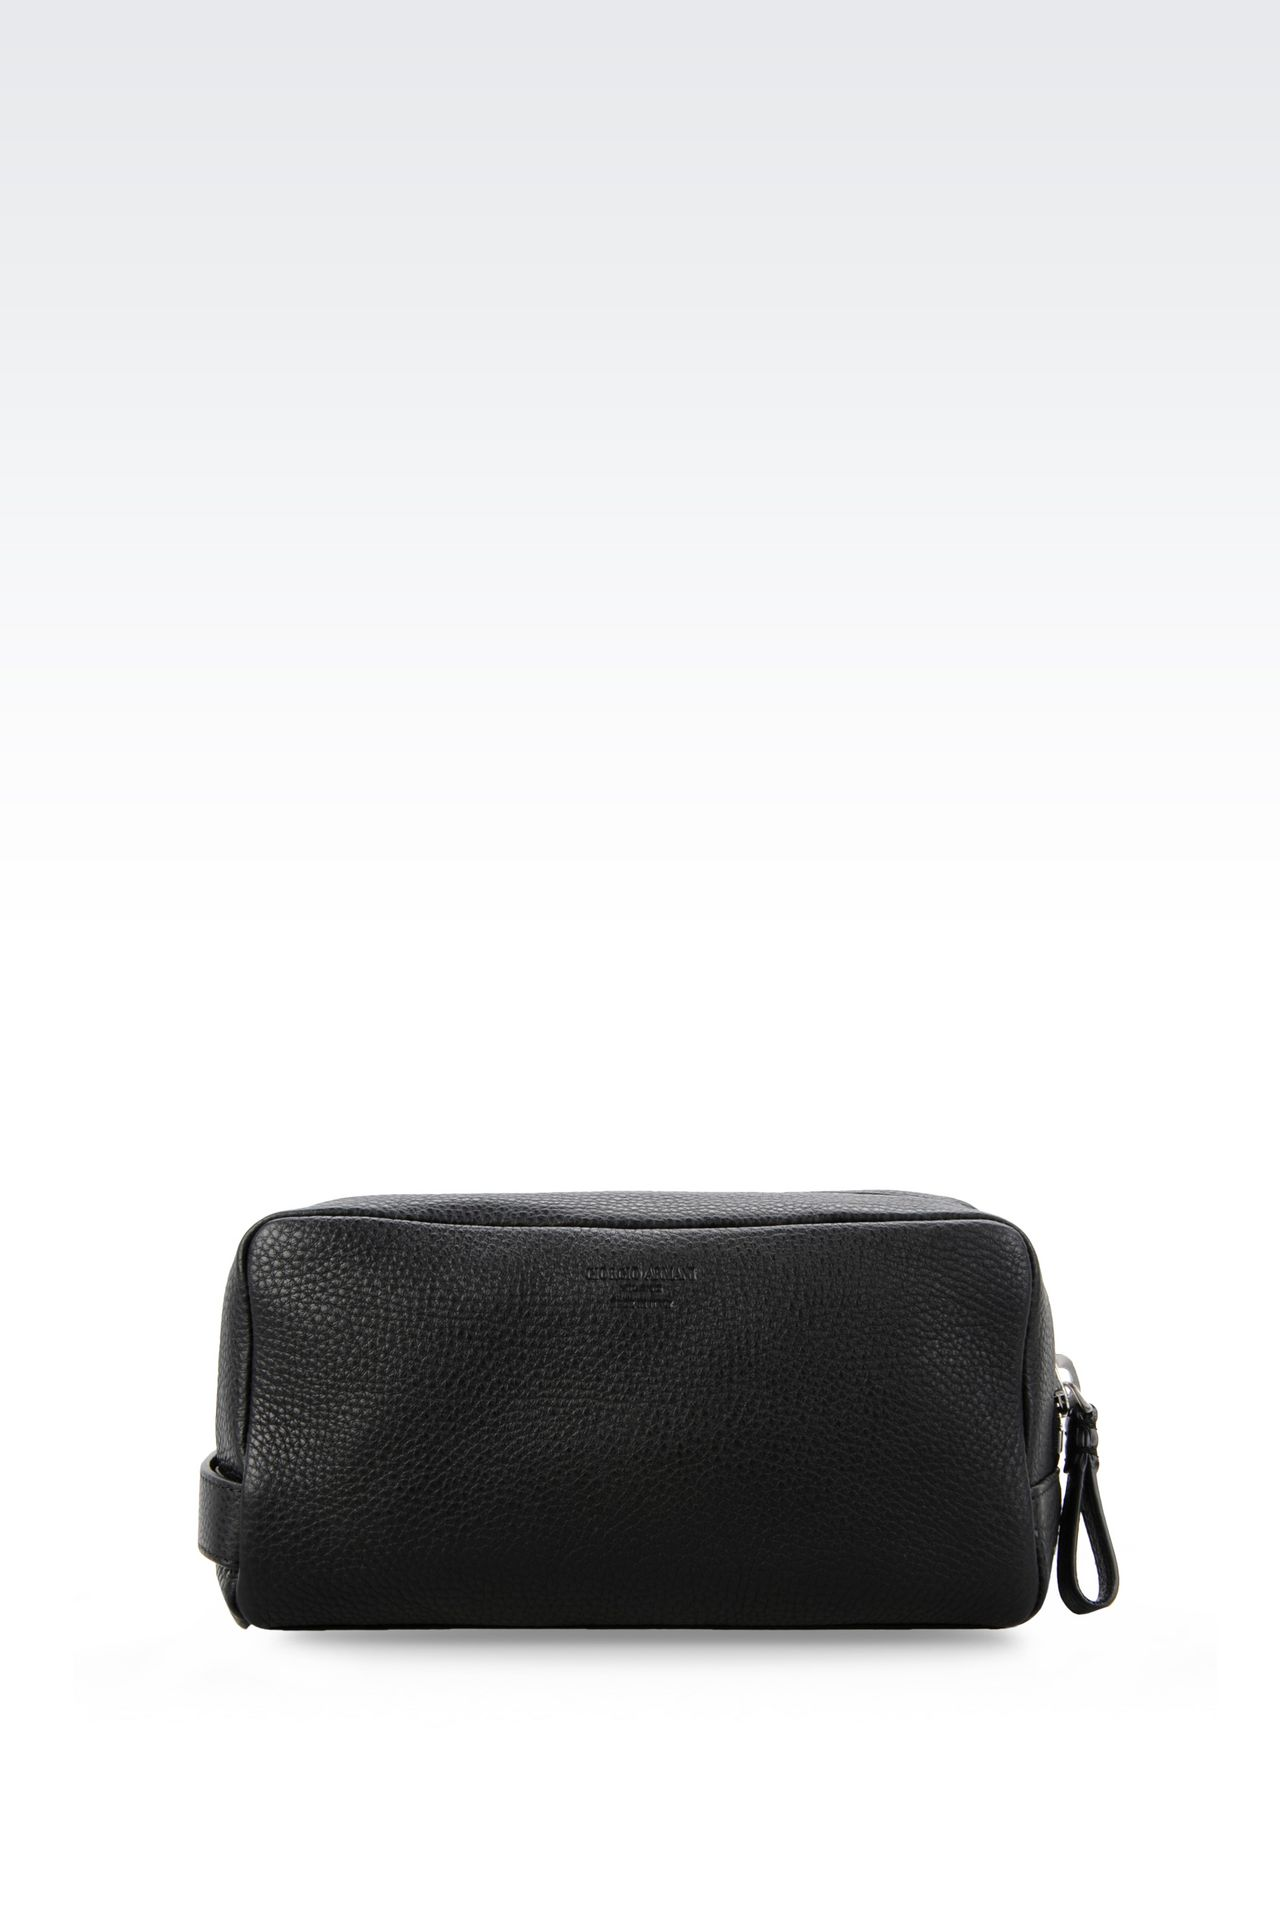 BEAUTY CASE IN PRINTED CALFSKIN: Beauty cases Men by Armani - 0